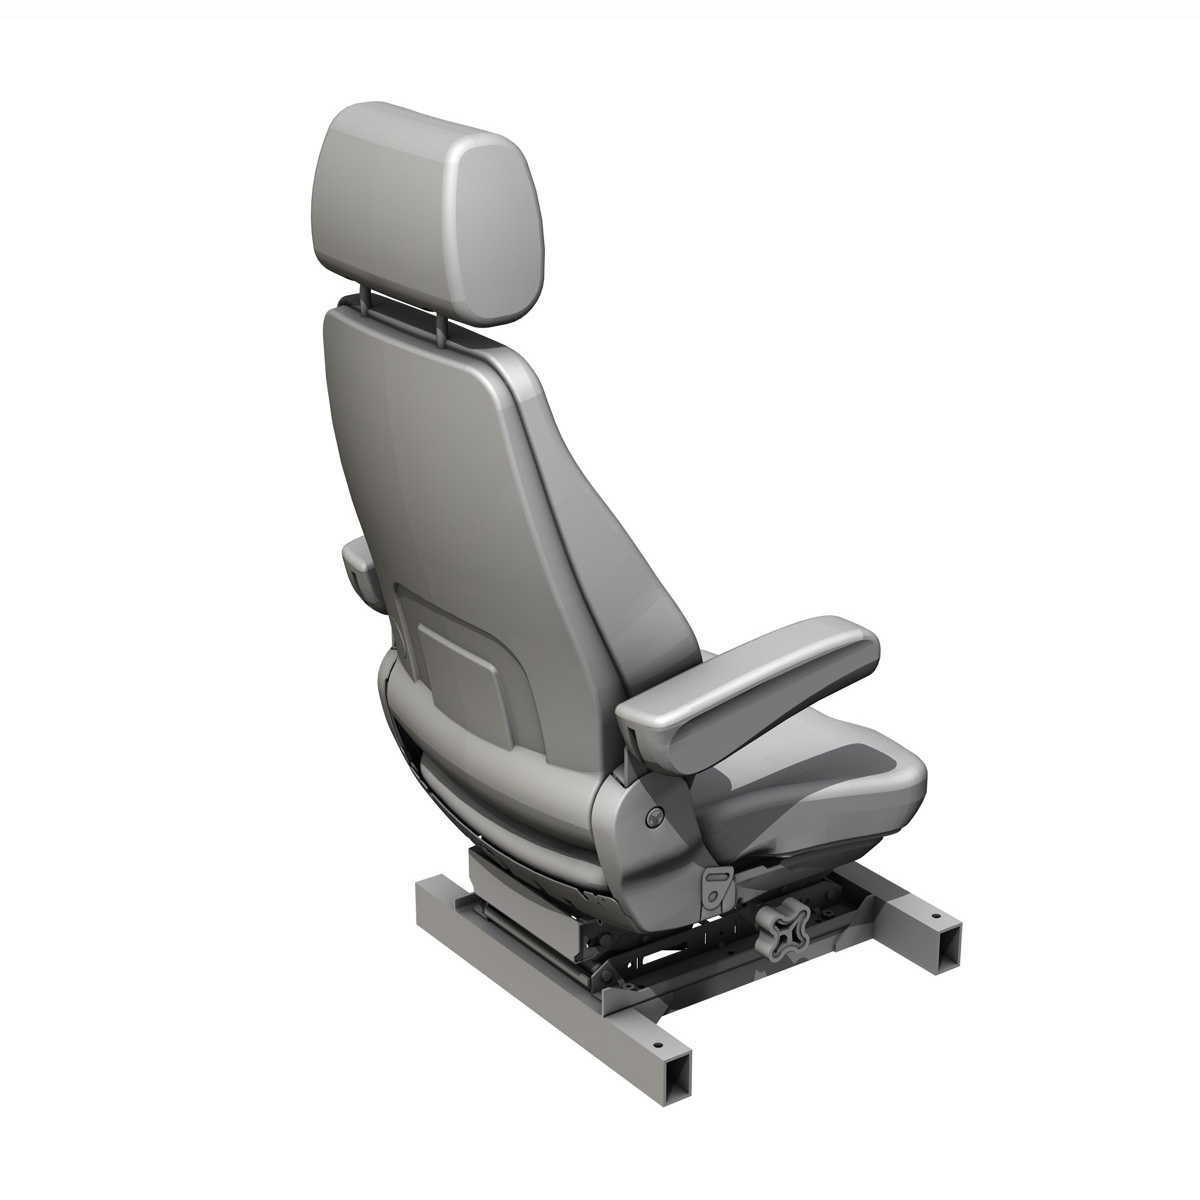 car seat with attachment 3d model 3ds fbx c4d lwo obj 187238